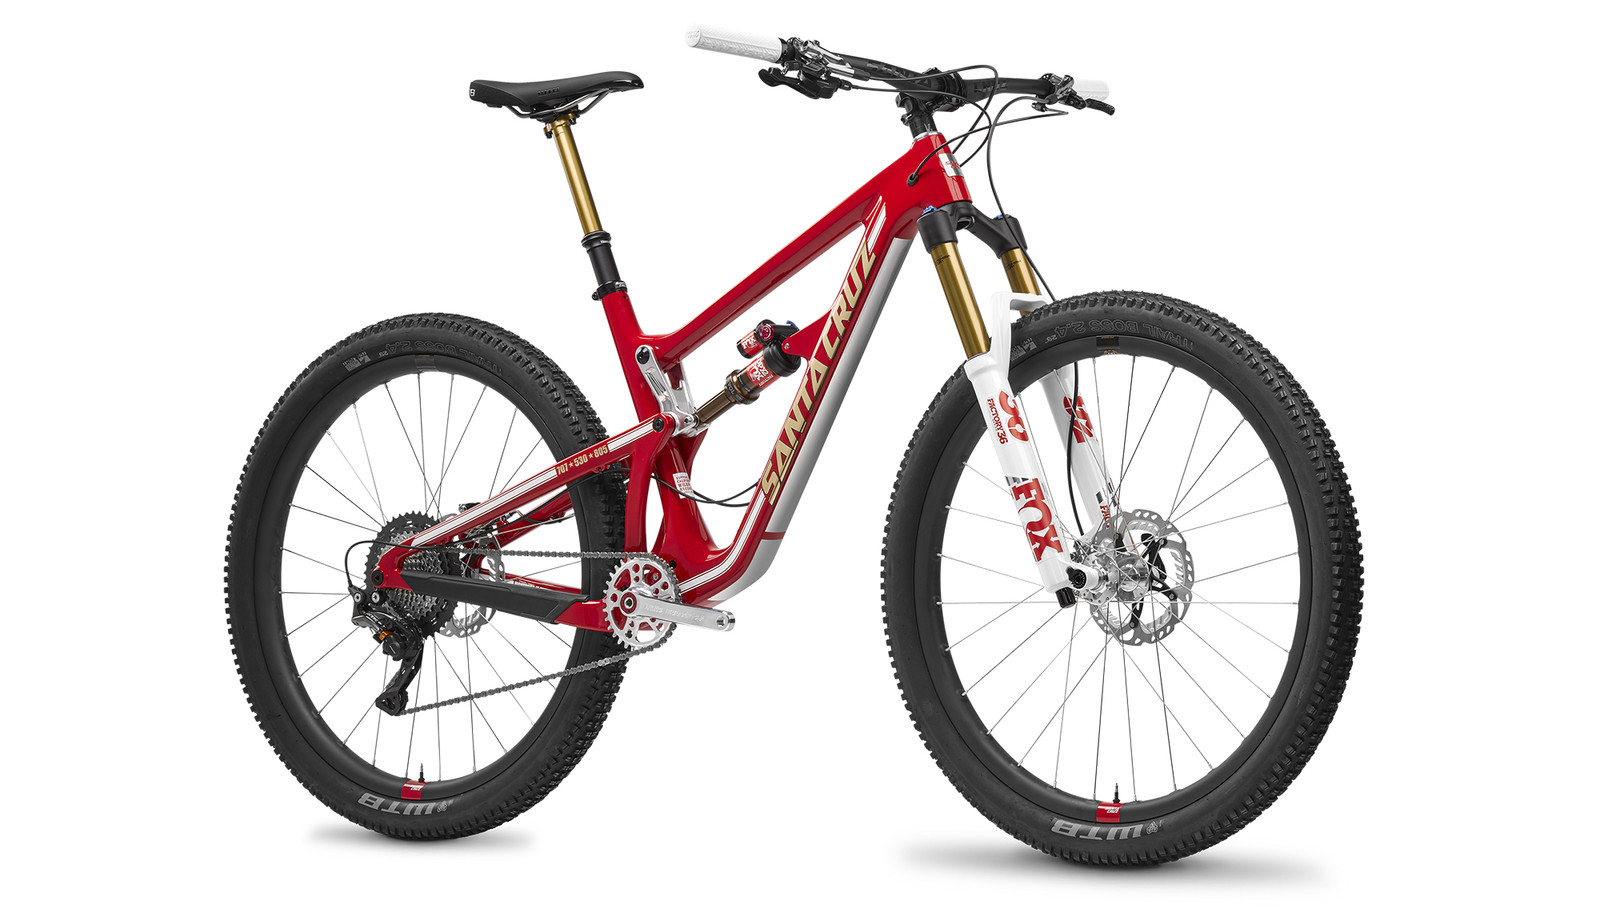 Back On Trail - Support Wildfire Trail Reconstruction Through Raffle for Custom Santa Cruz Bikes